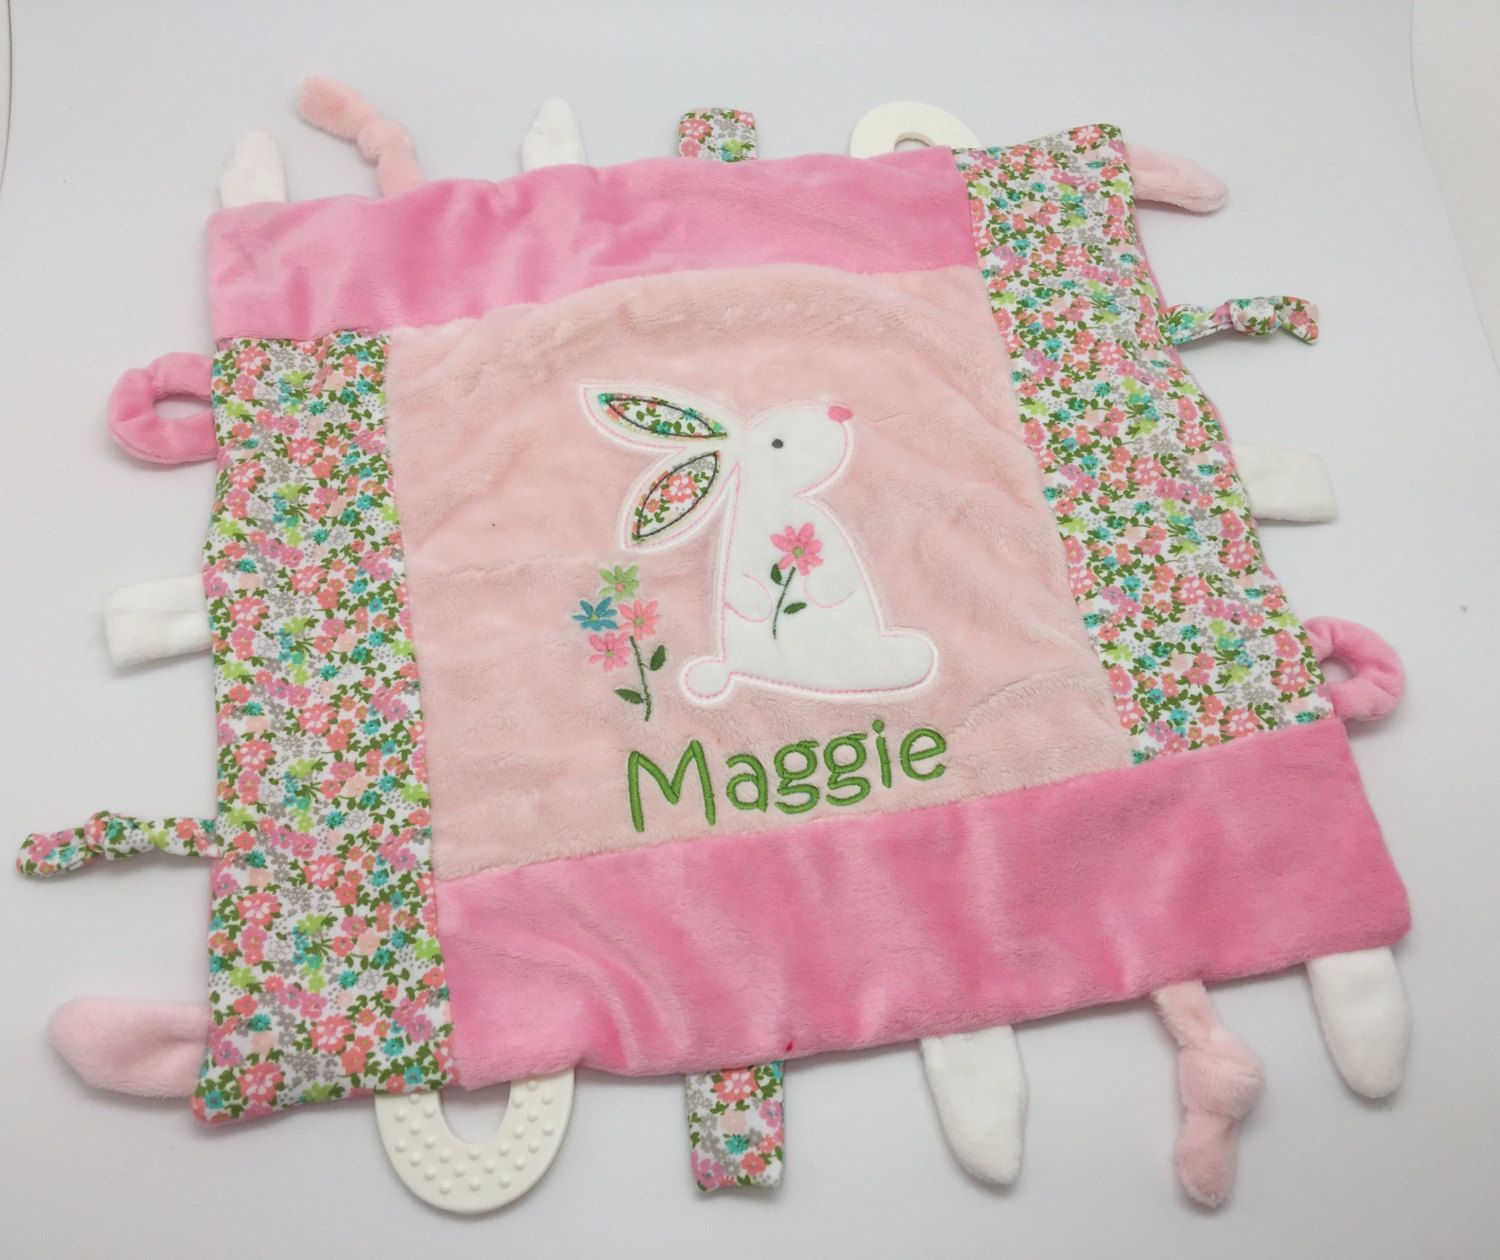 Personalized baby girl gift blankie toy minky blanket personalized baby girl gift blankie toy minky blanket personalized baby gift monogram negle Gallery